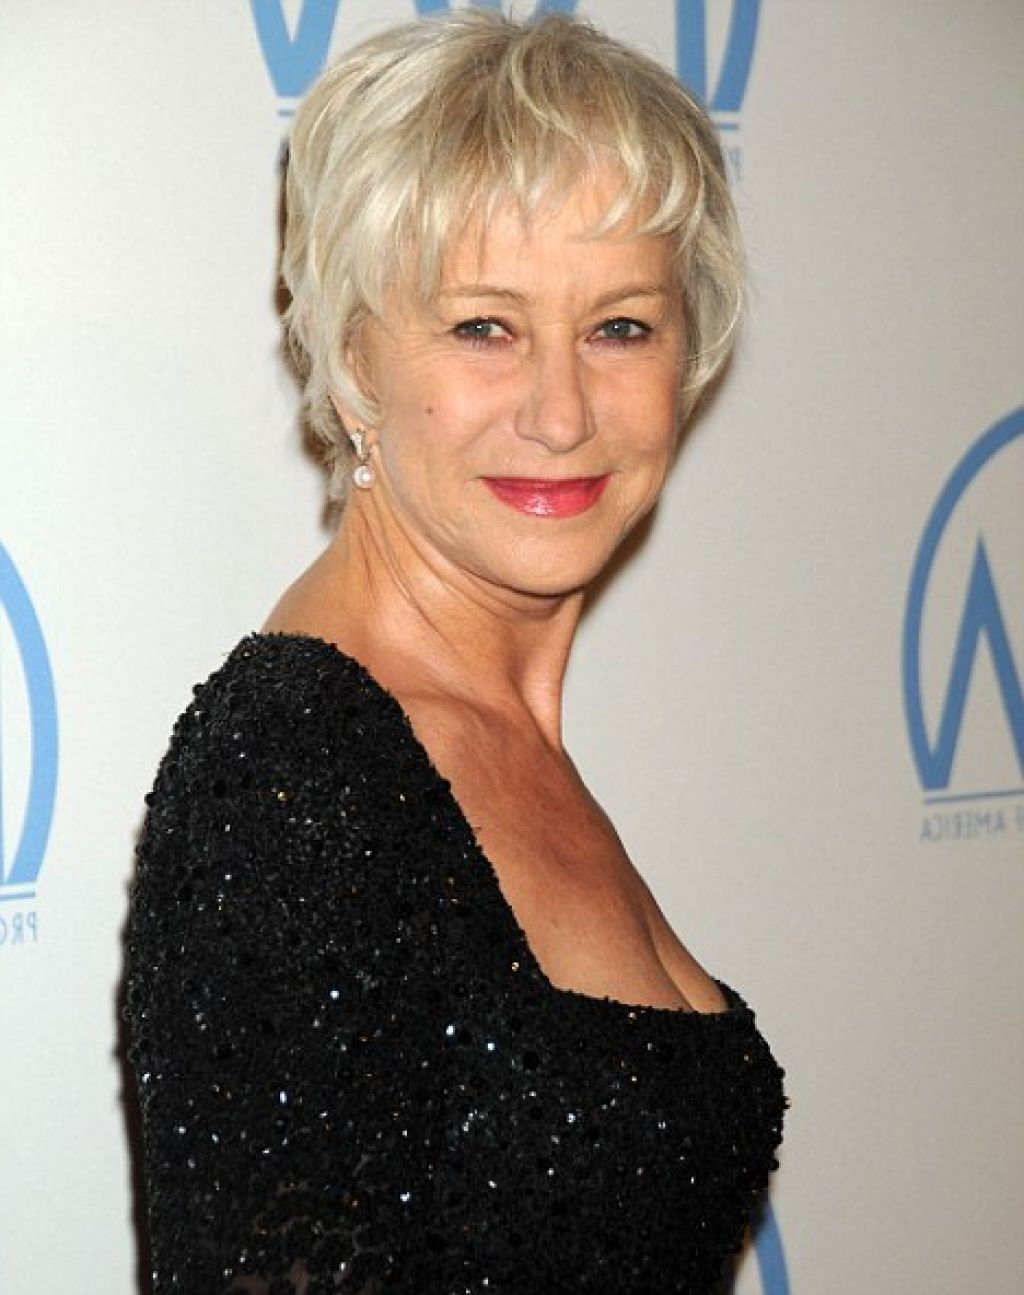 Helen Mirren Pixie Haircut This Style Is Using Short Hair And Fine